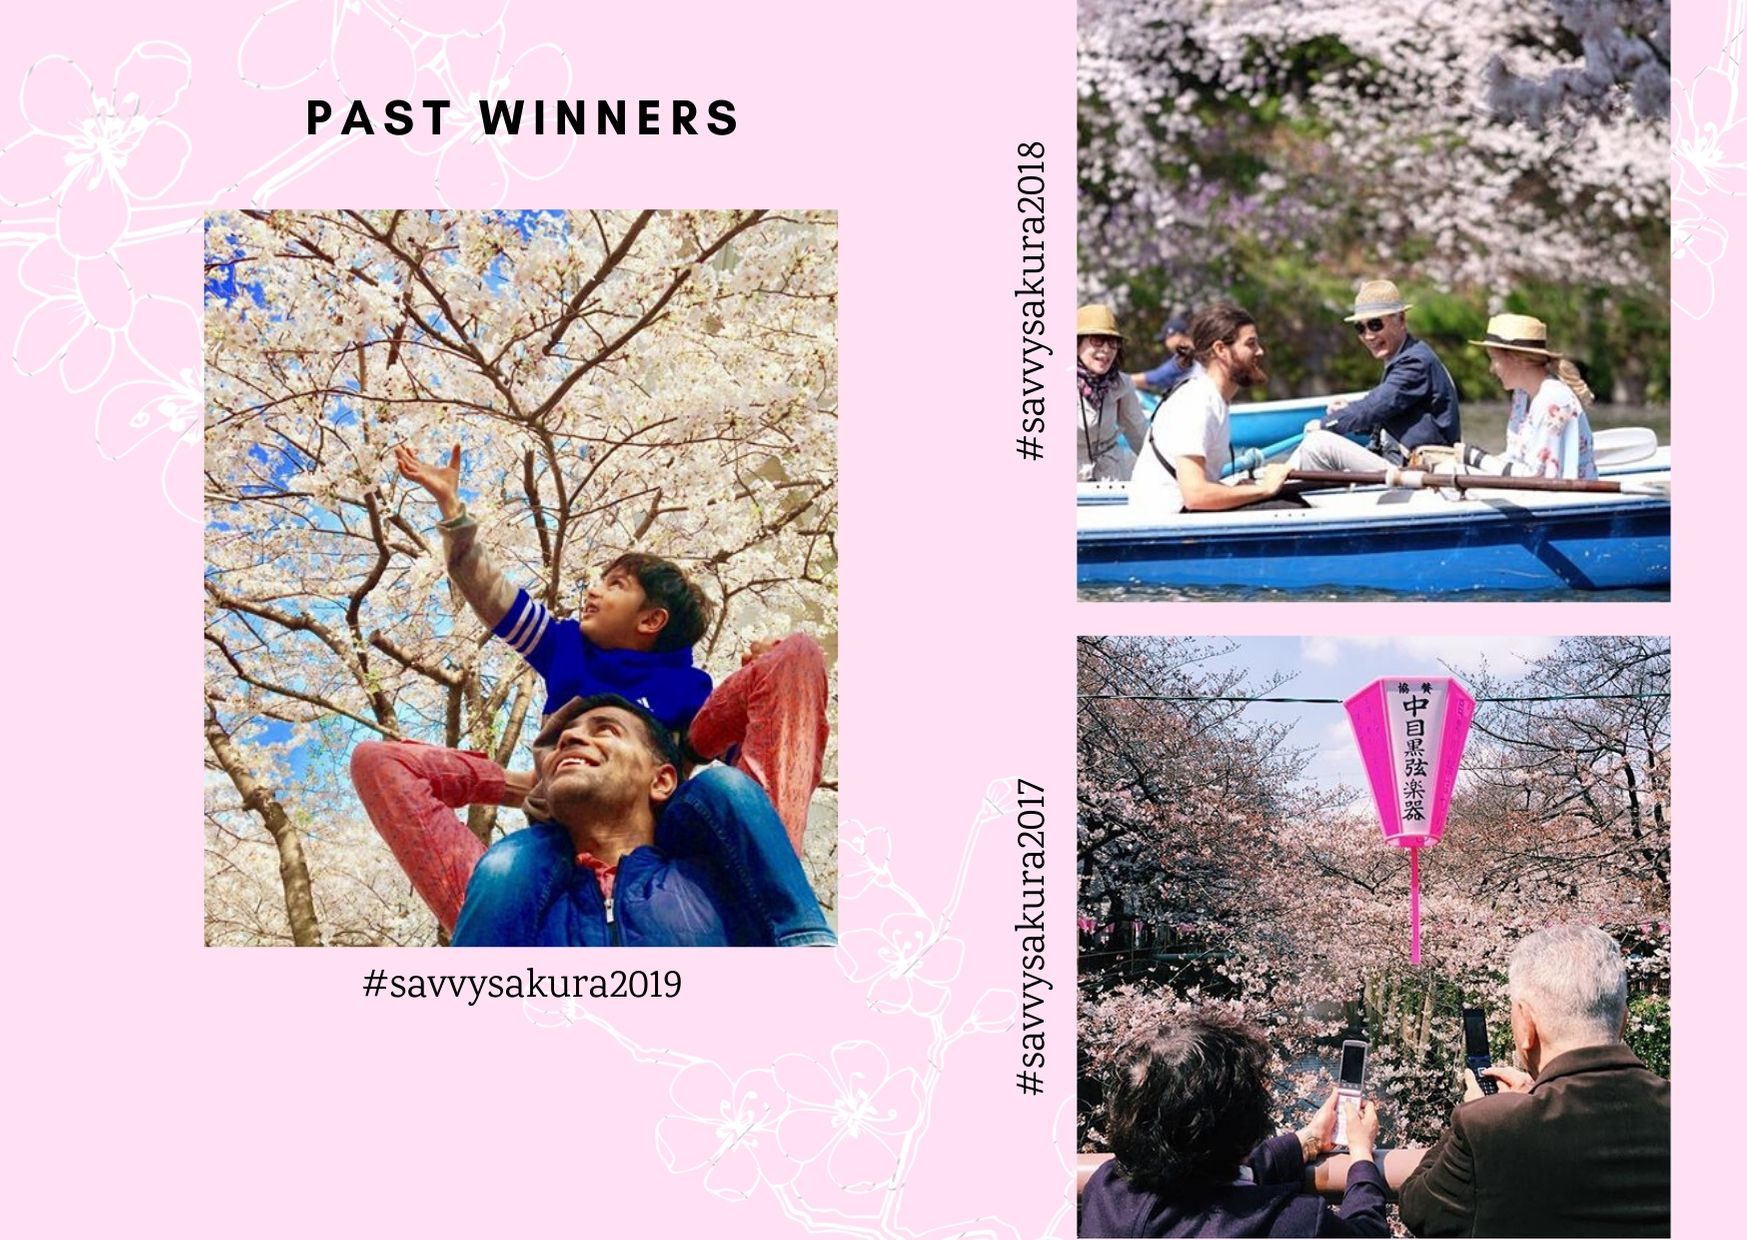 Sakura past winners